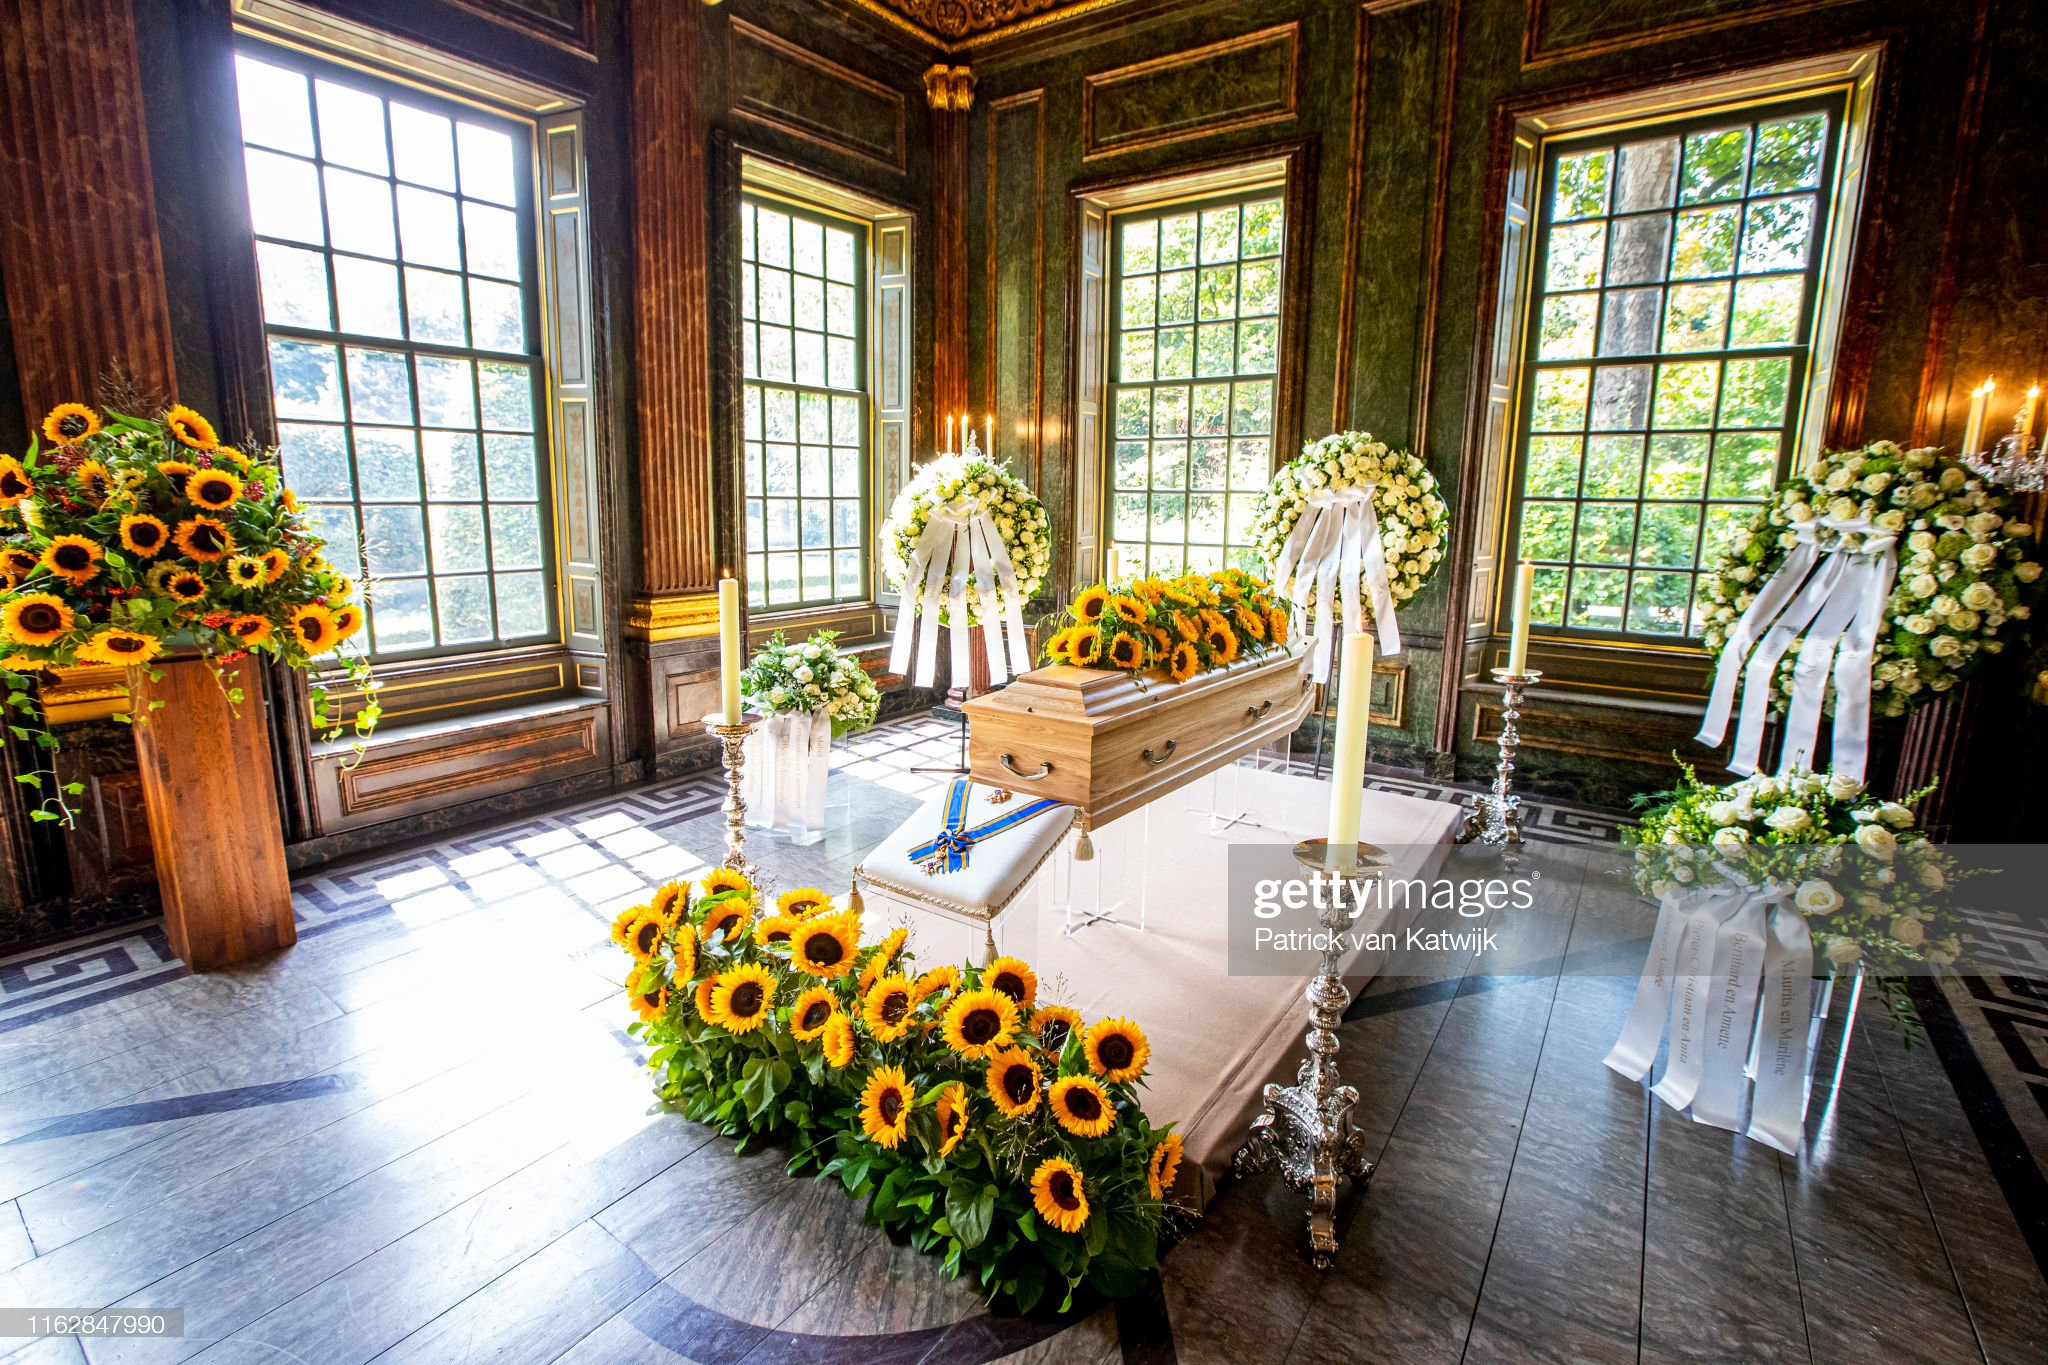 mourning-chapel-with-the-coffin-of-princess-christina-of-the-on-20-picture-id1162847990?s=2048x2048